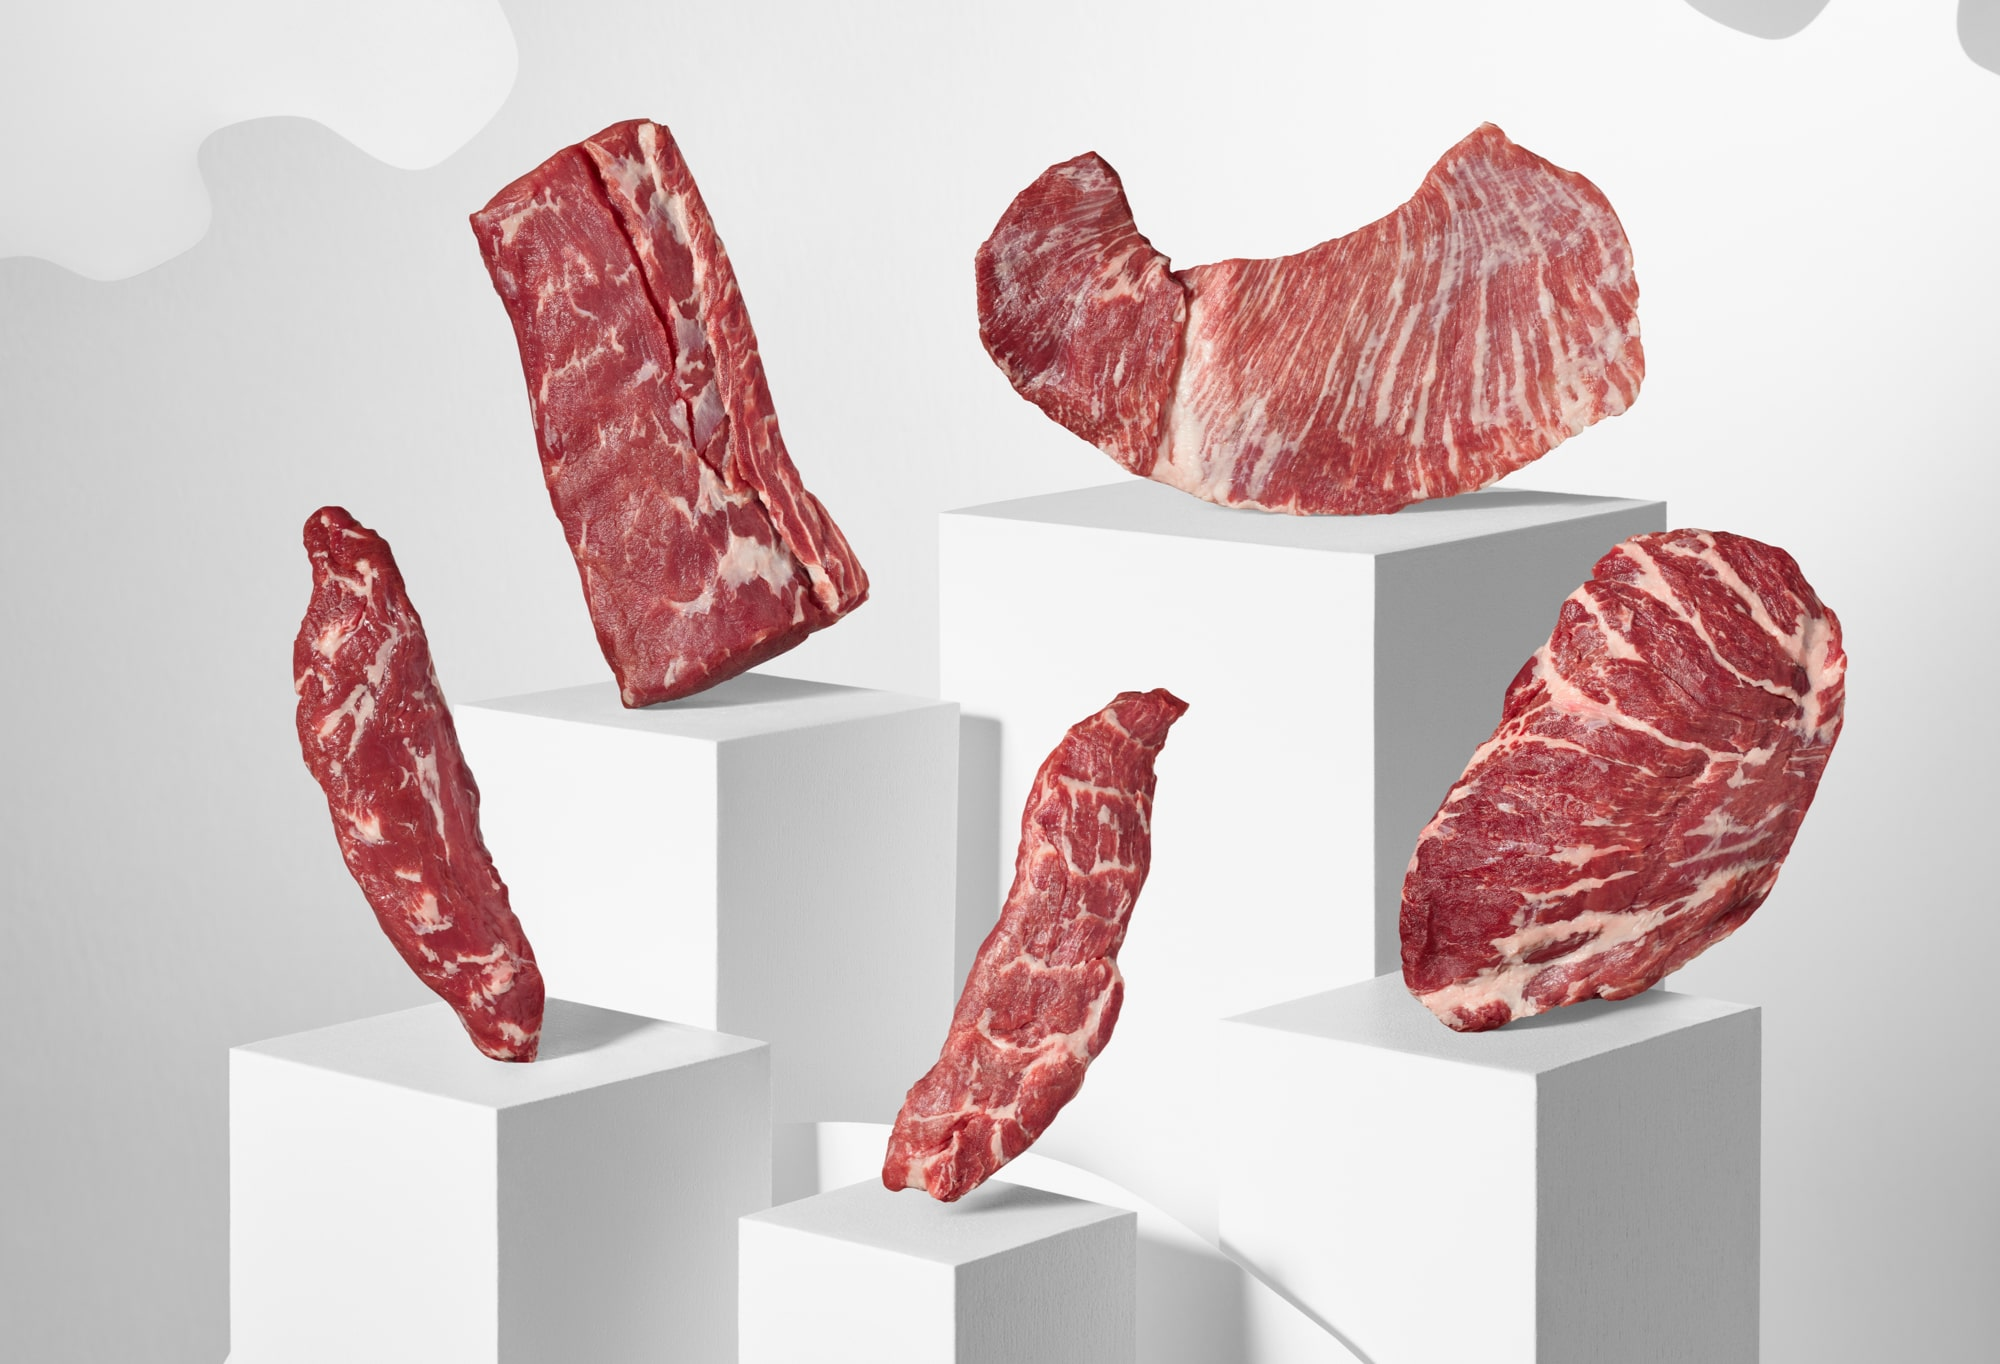 <b>Joselito Meat Cuts</b><br>Frozen at -80ºC<br>